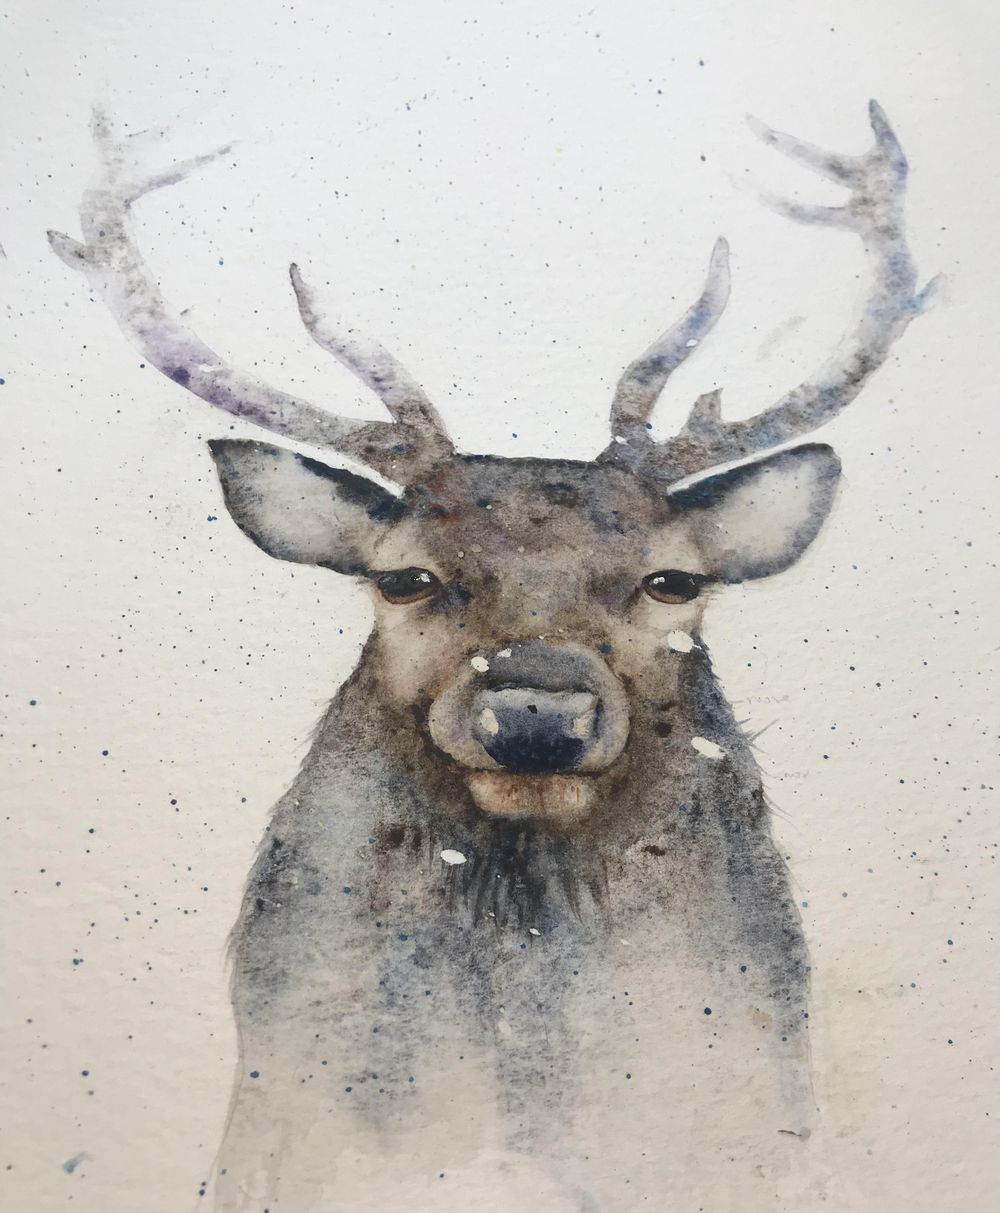 Post Christmas Rudolph - image 1 - student project